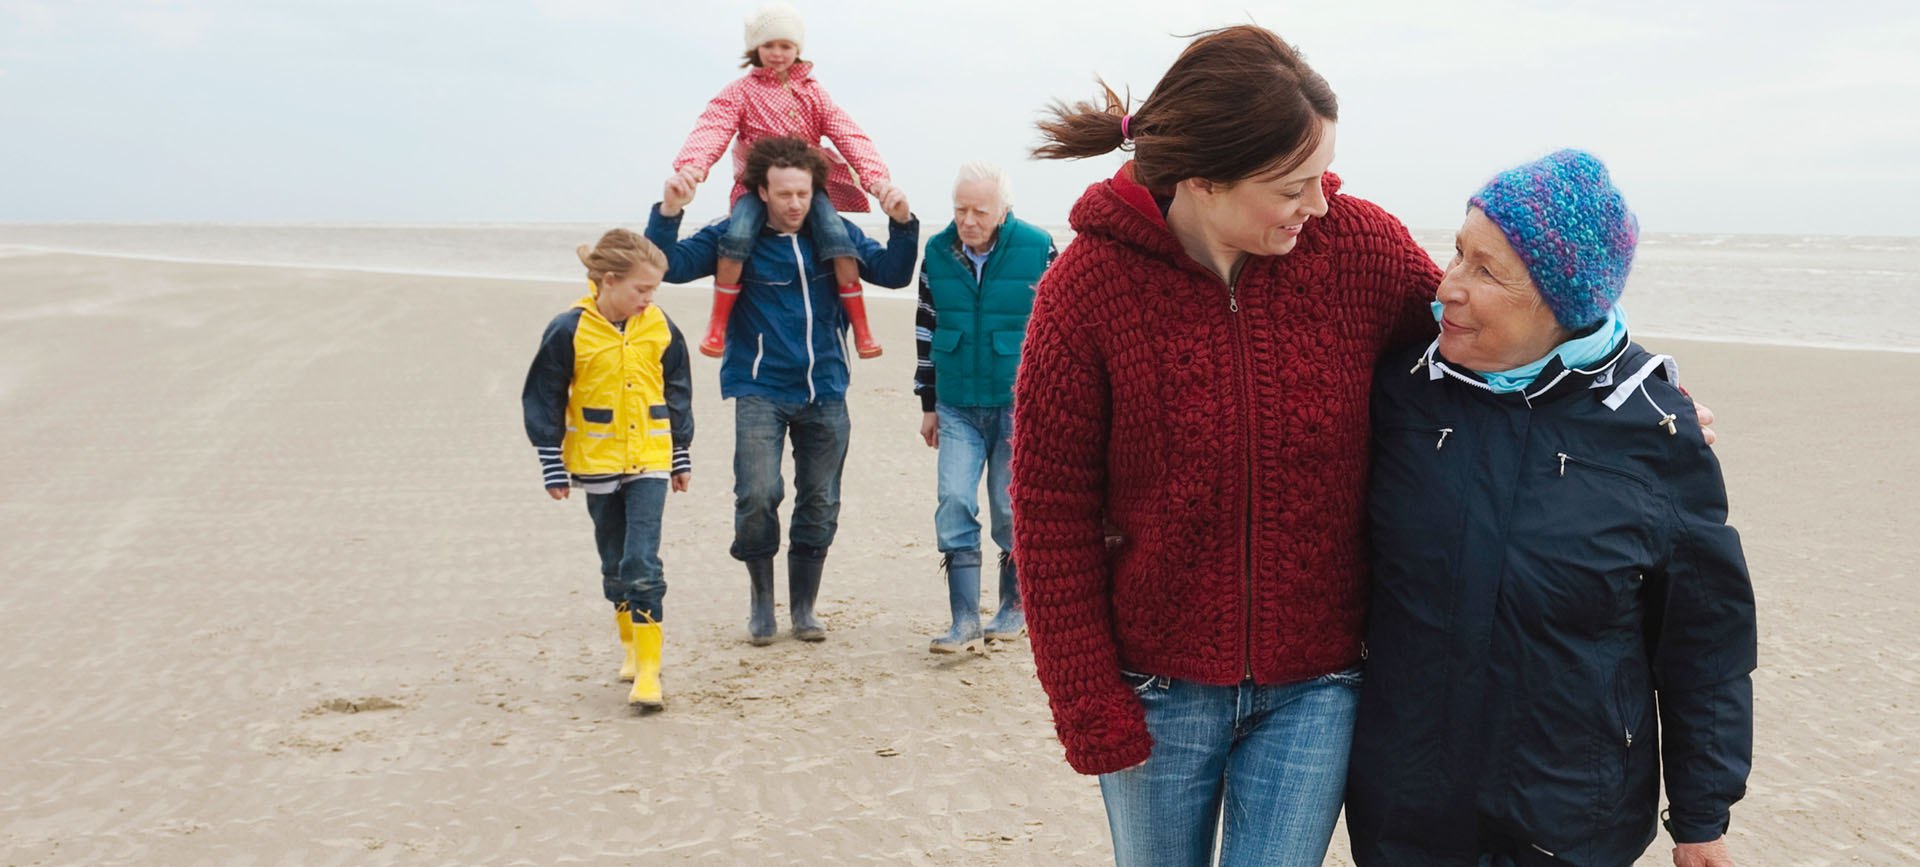 A younger and older woman walking together with two men and two children behind them.